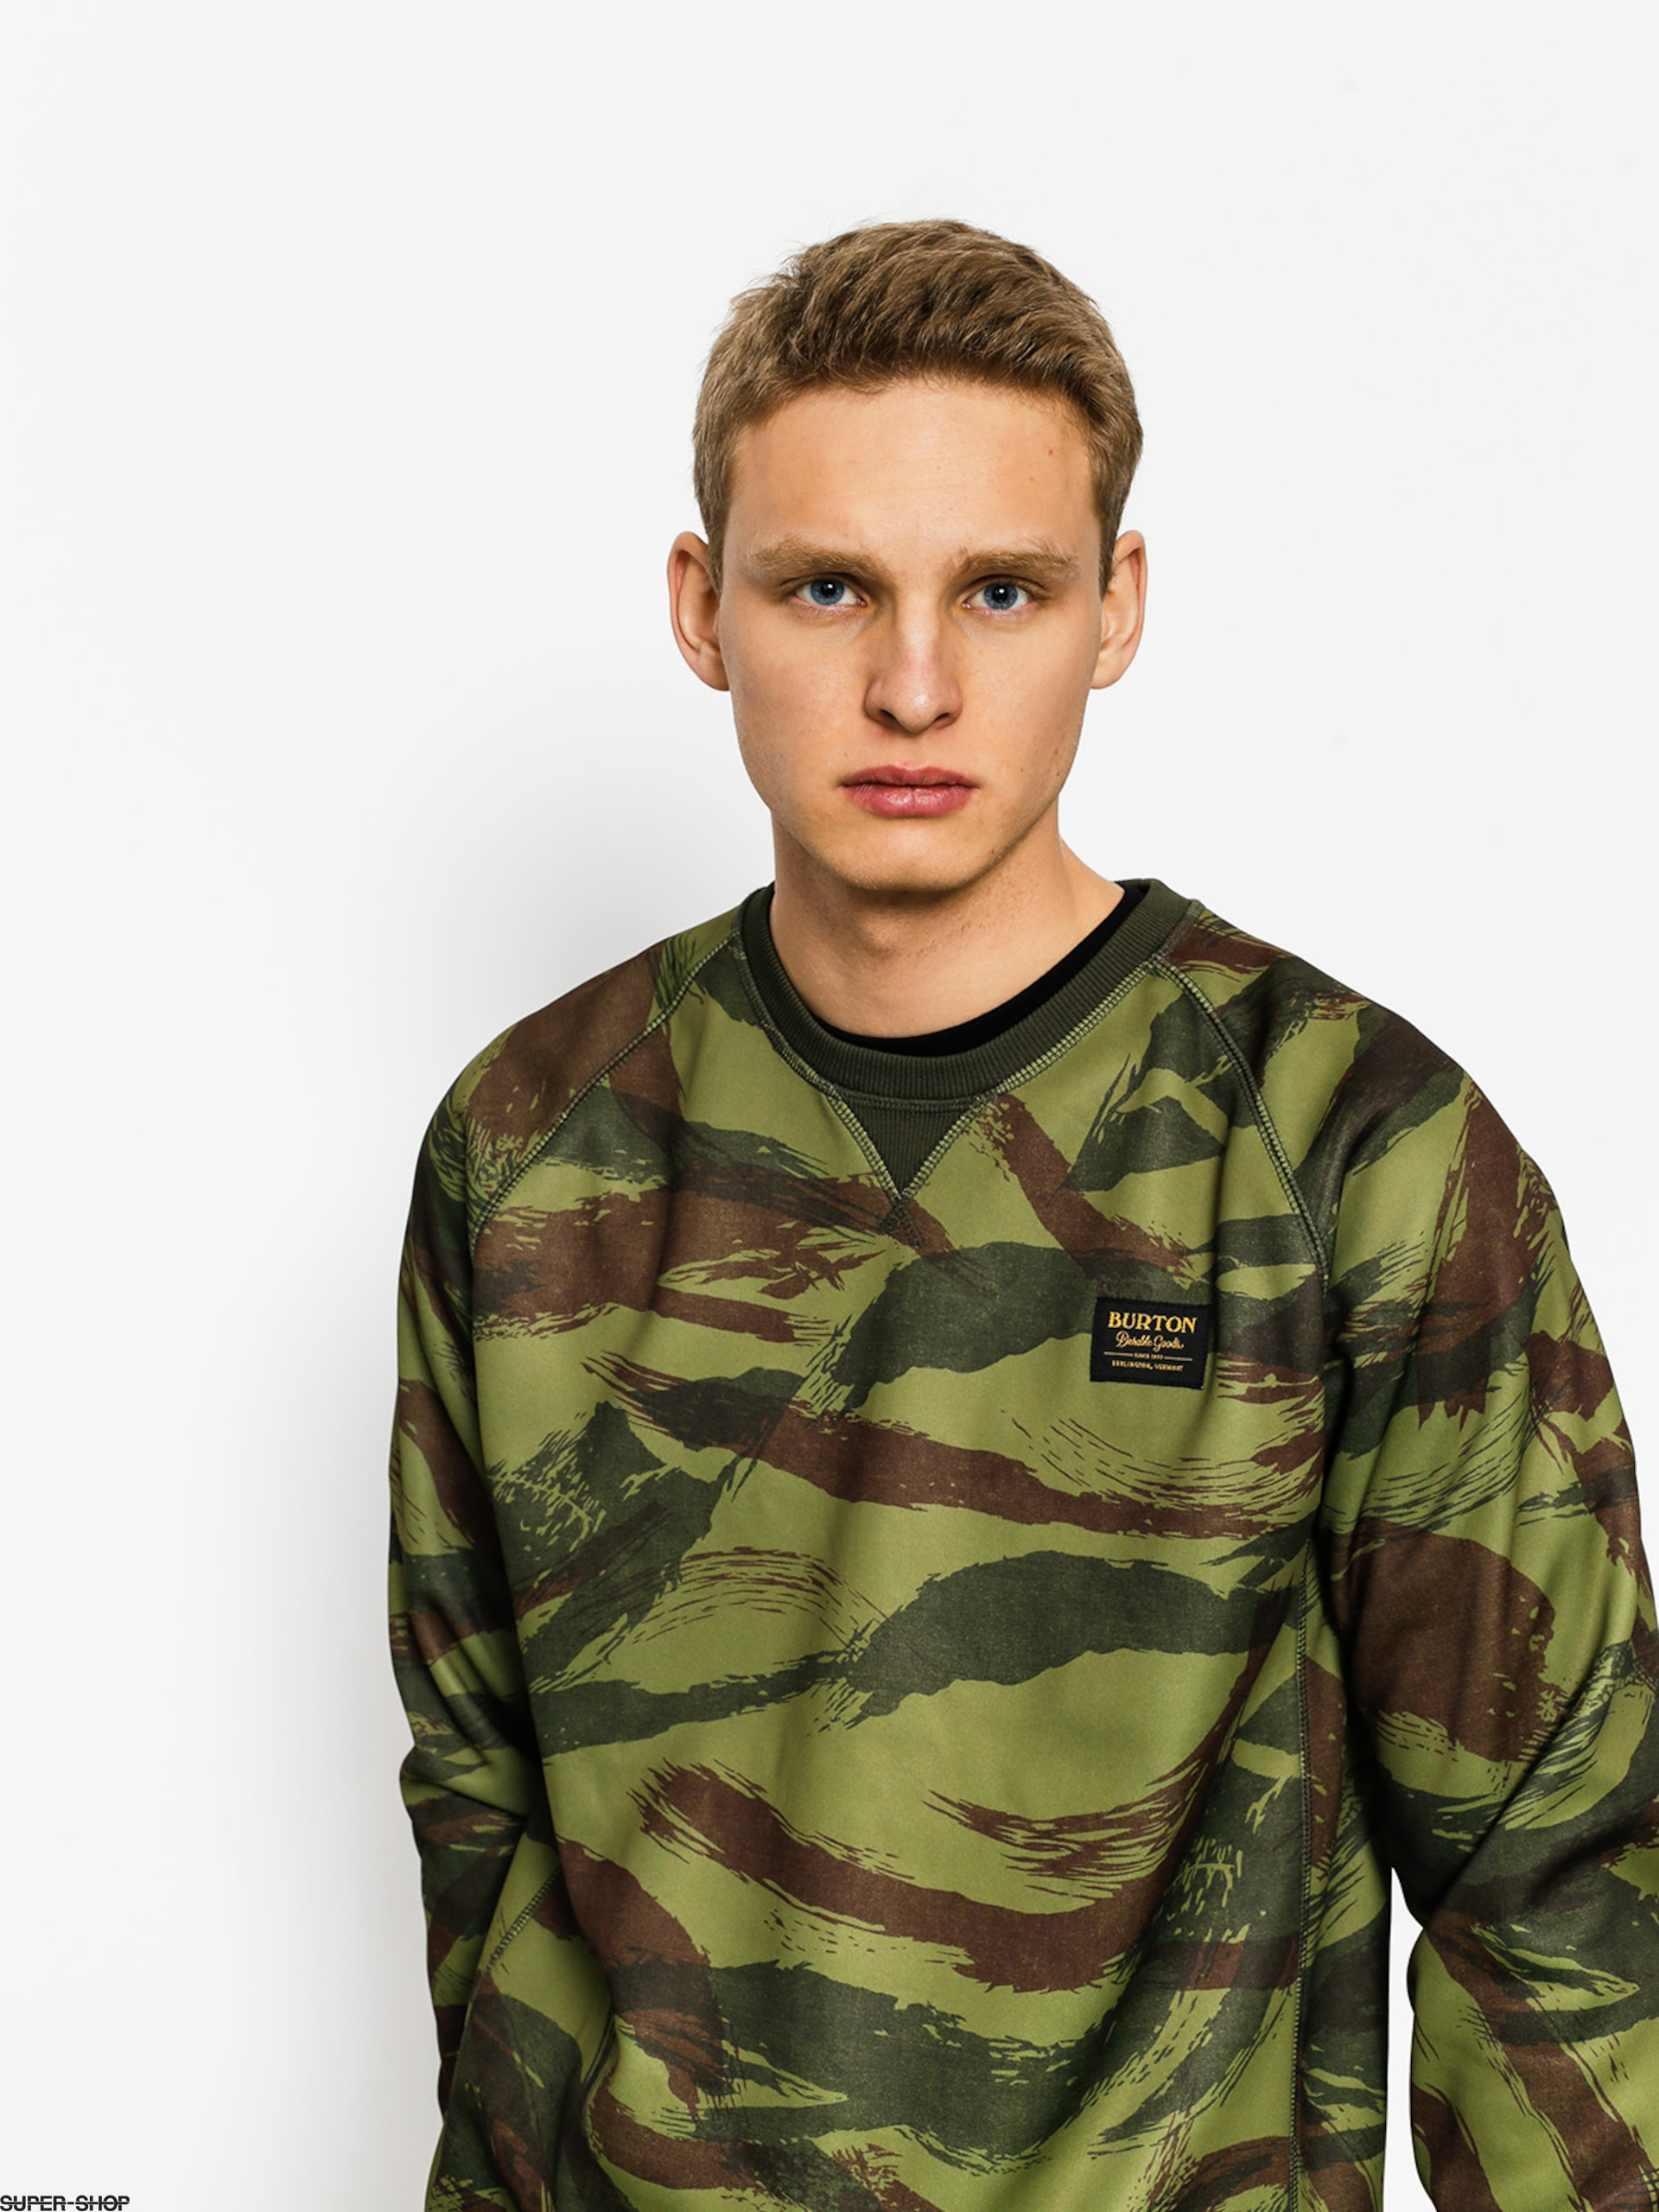 Burton Active sweatshirt Bonded Crew (brush camo)